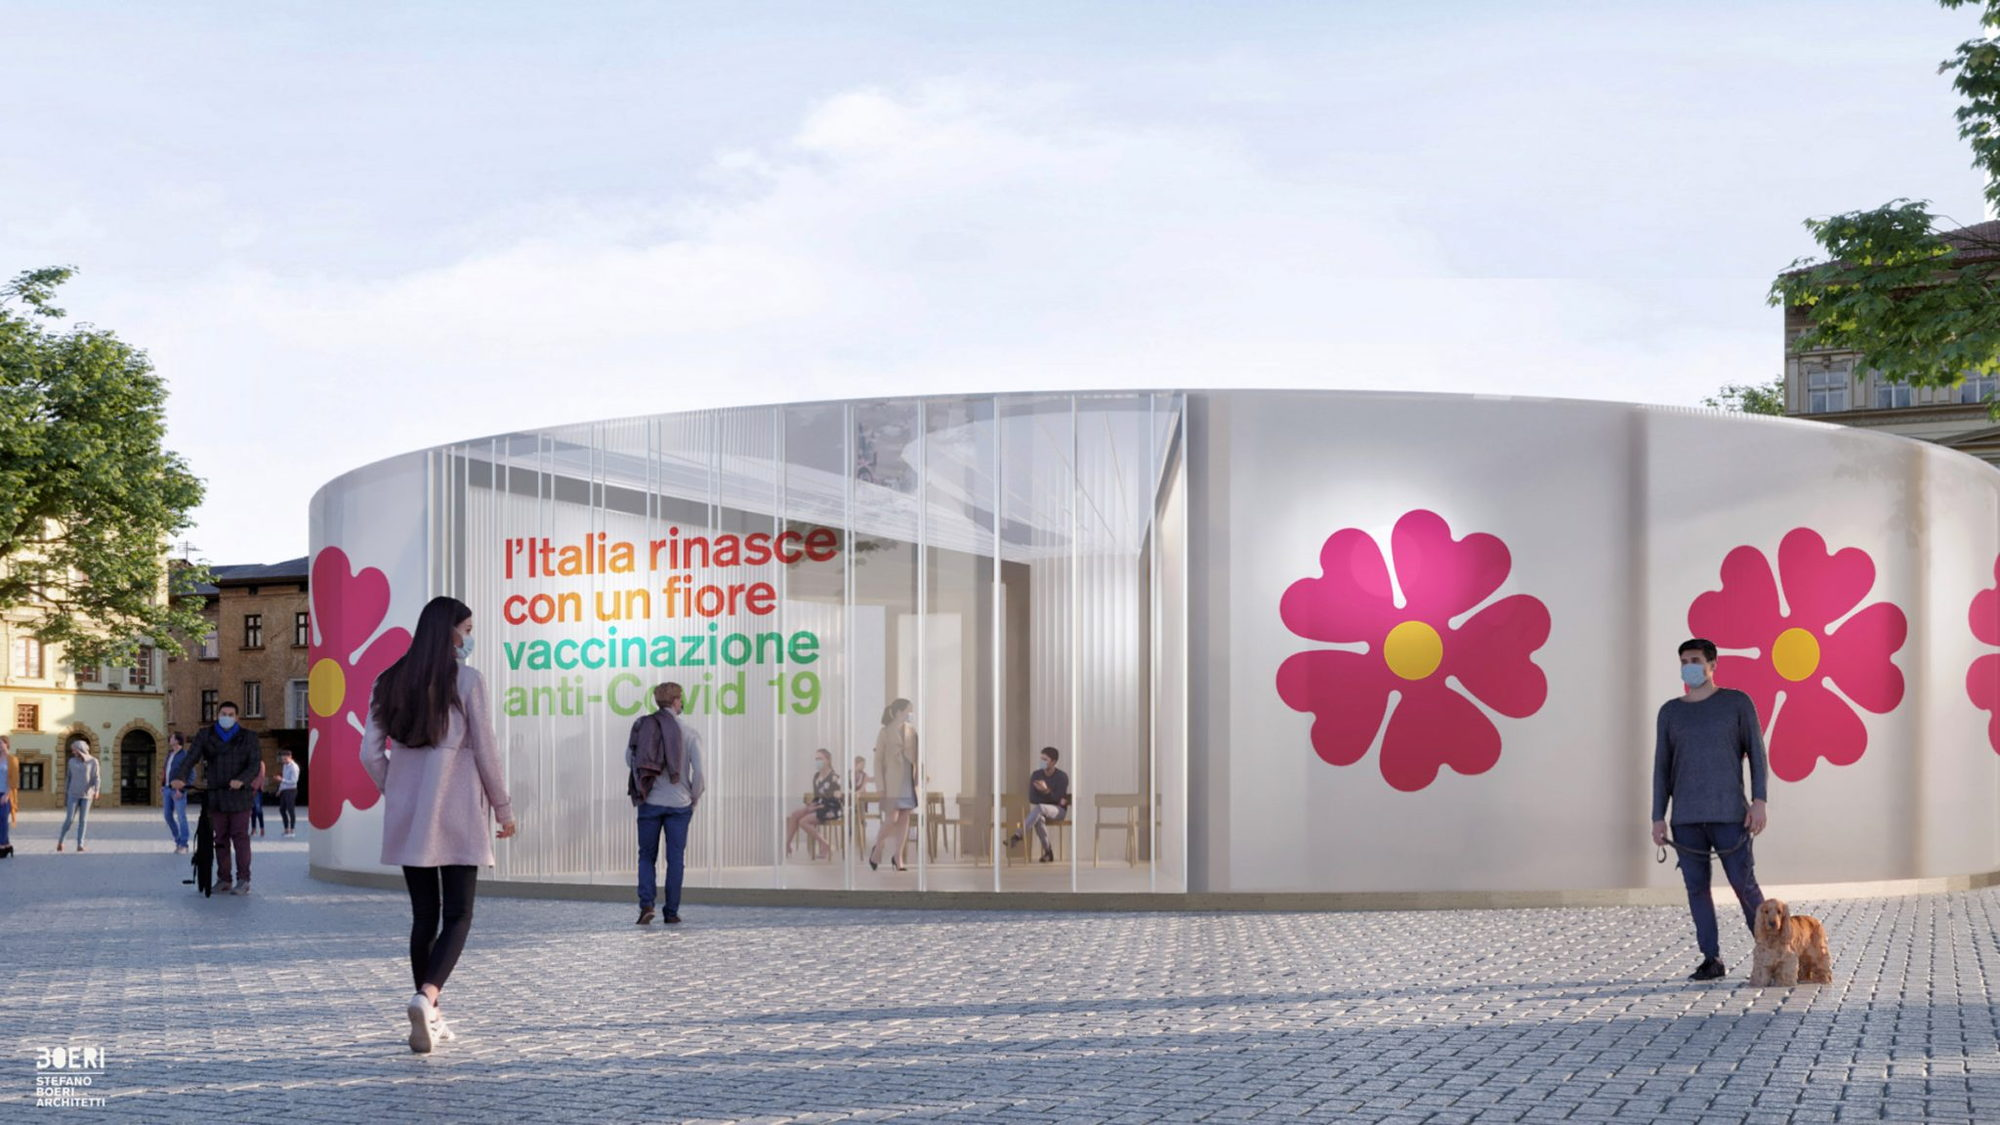 Stefano Boeri's Flowery COVID-19 Vaccination Pavilions to Help Respark Public Life in Italy